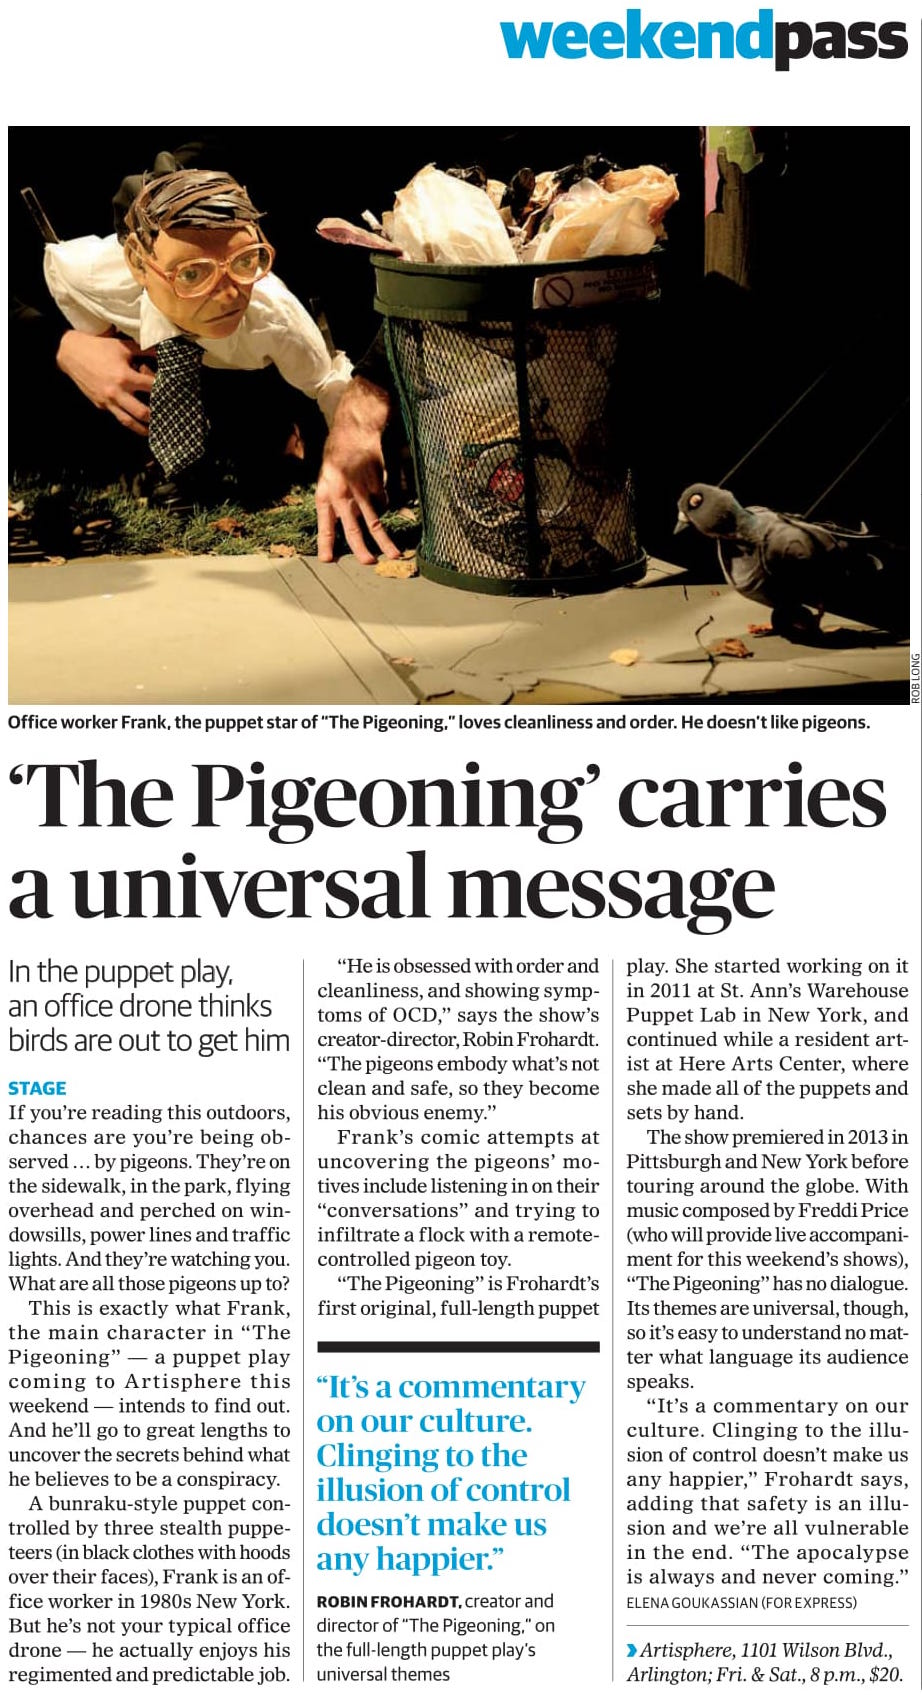 https://www.washingtonpost.com/express/wp/2015/03/26/puppet-play-the-pigeoning-carries-a-universal-message-to-artisphere/